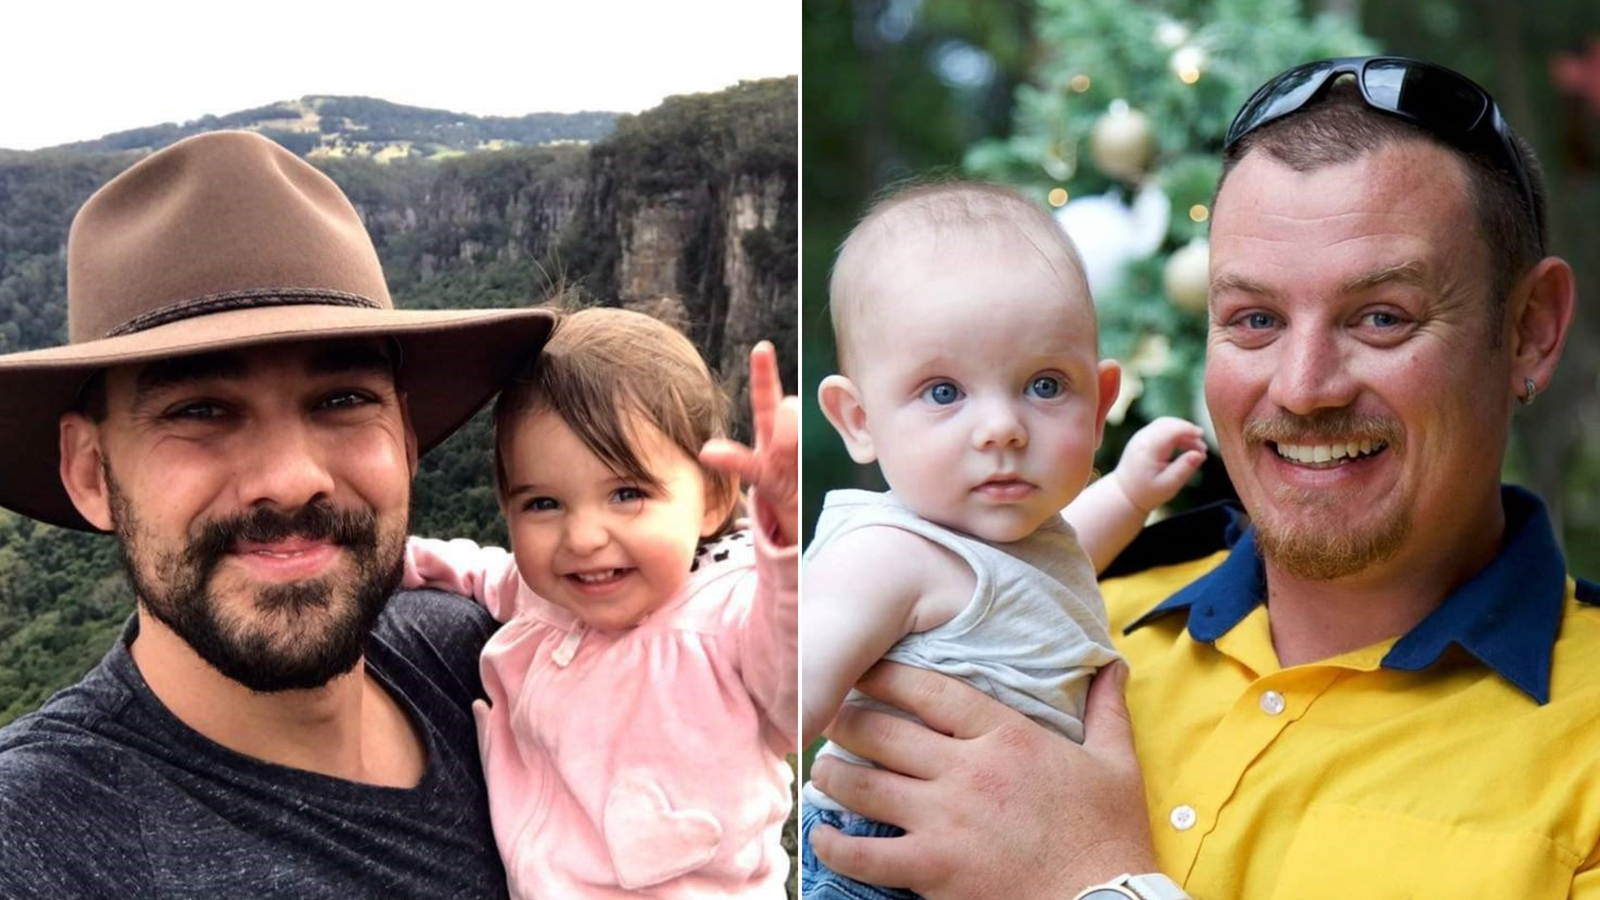 Firefighters Andrew O'Dwyer (left) and Geoffrey Keaton (right) died during firefighting operations as bushfires ravage New South Wales. (Credit: NSW Rural Fire Service via CNN Wire)